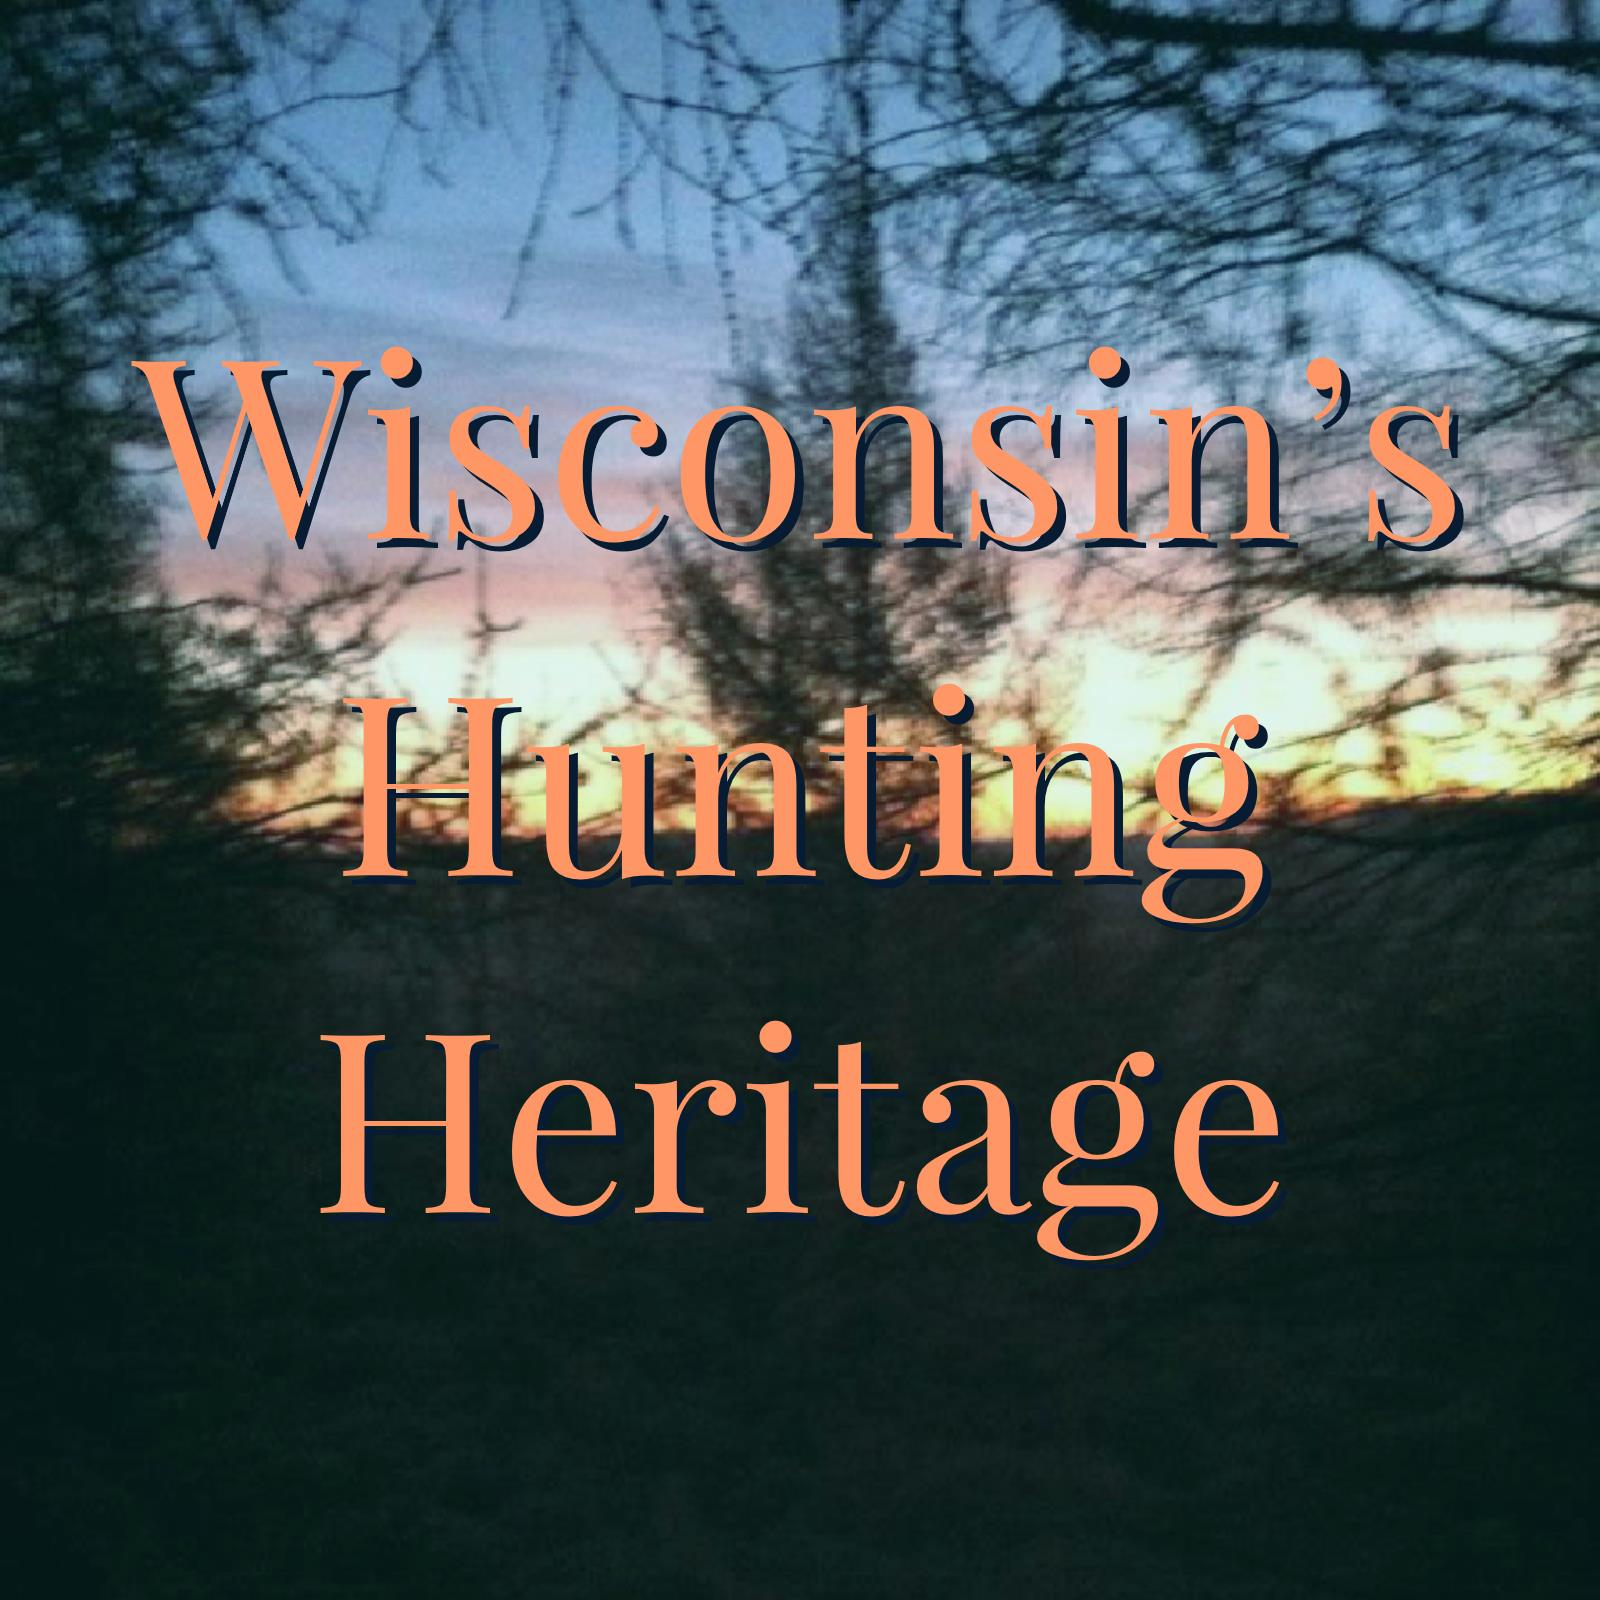 Wisconsin's Hunting Heritage logo